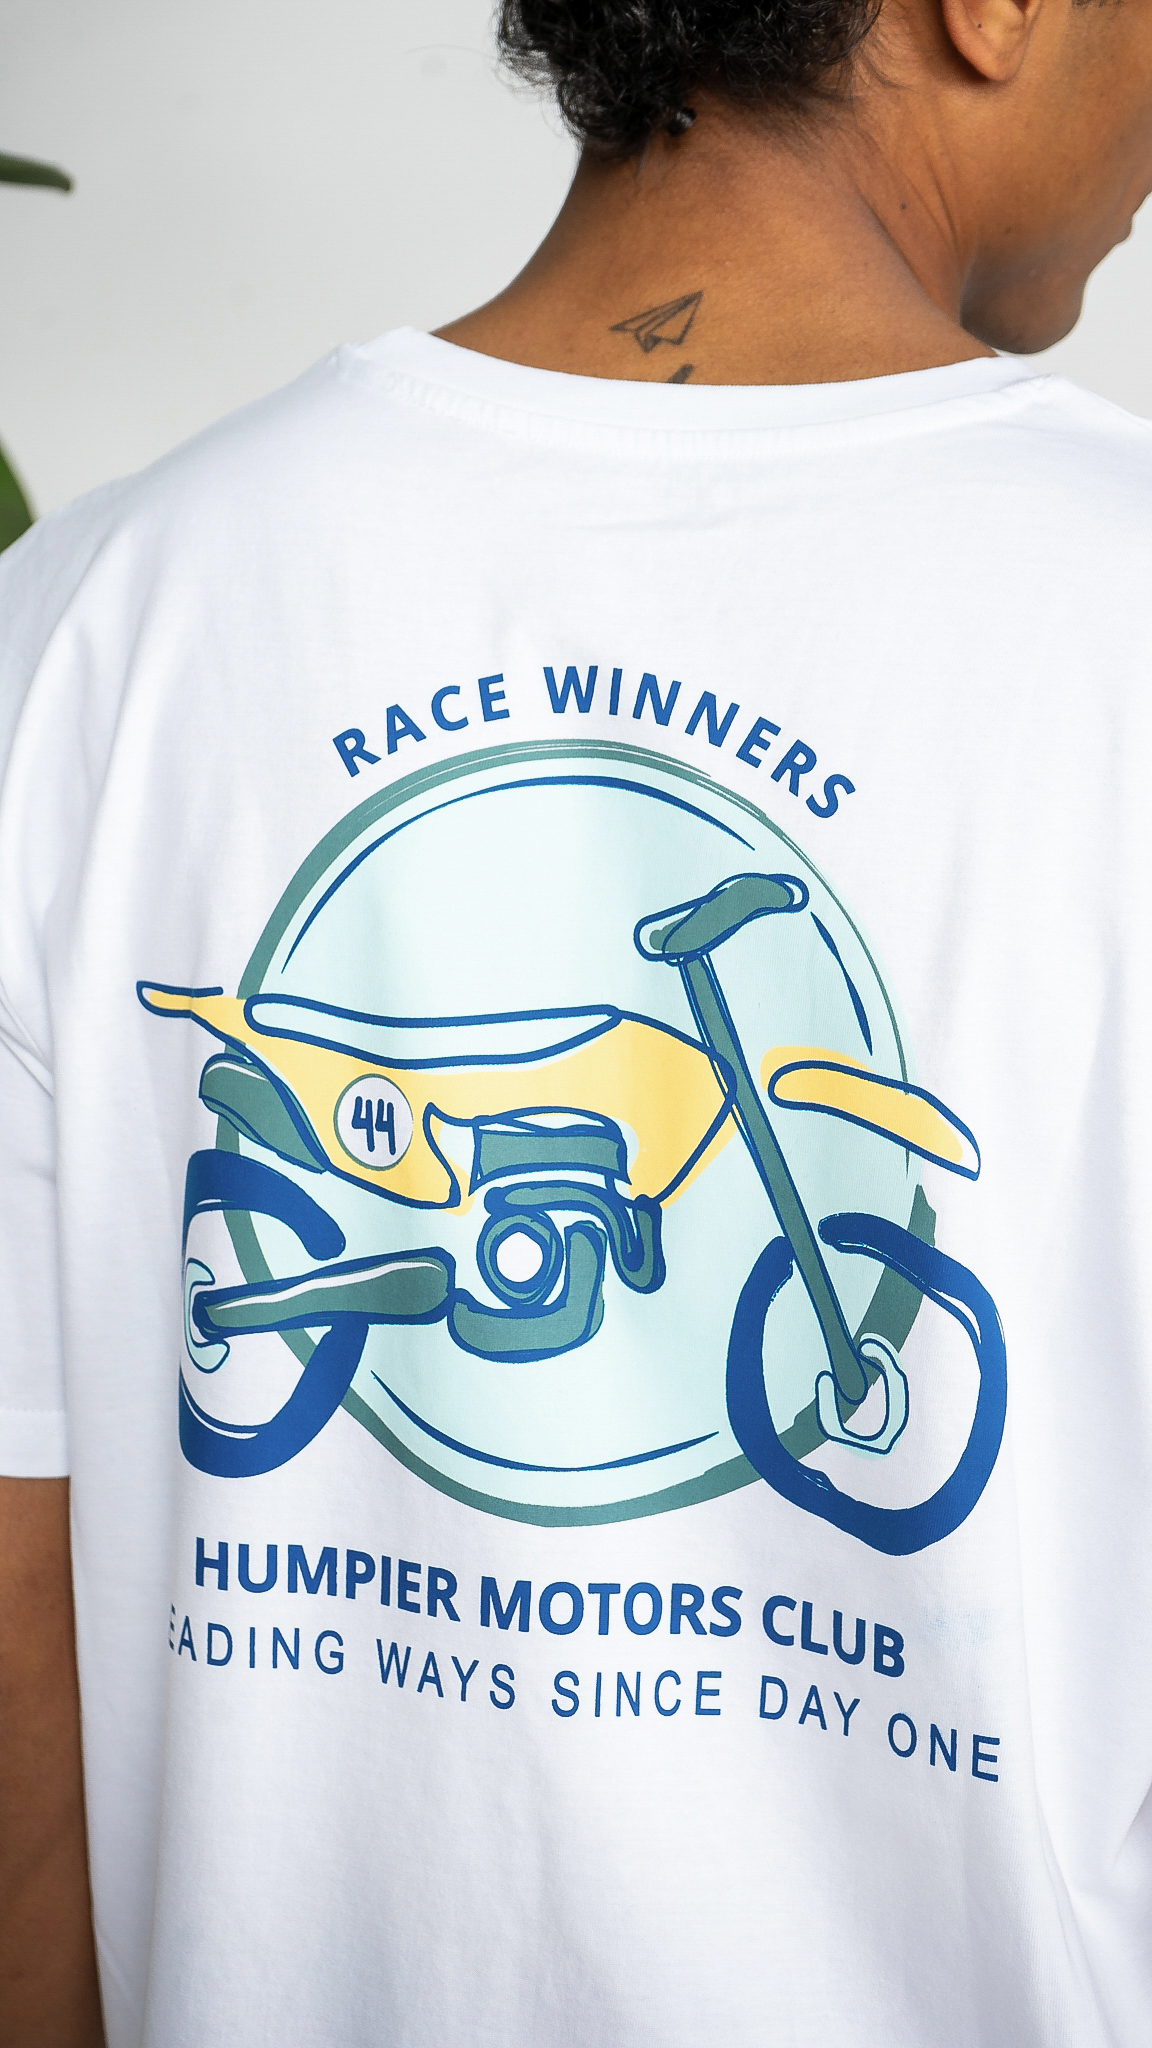 Camiseta Race Winners | Humpier | Edición limitada